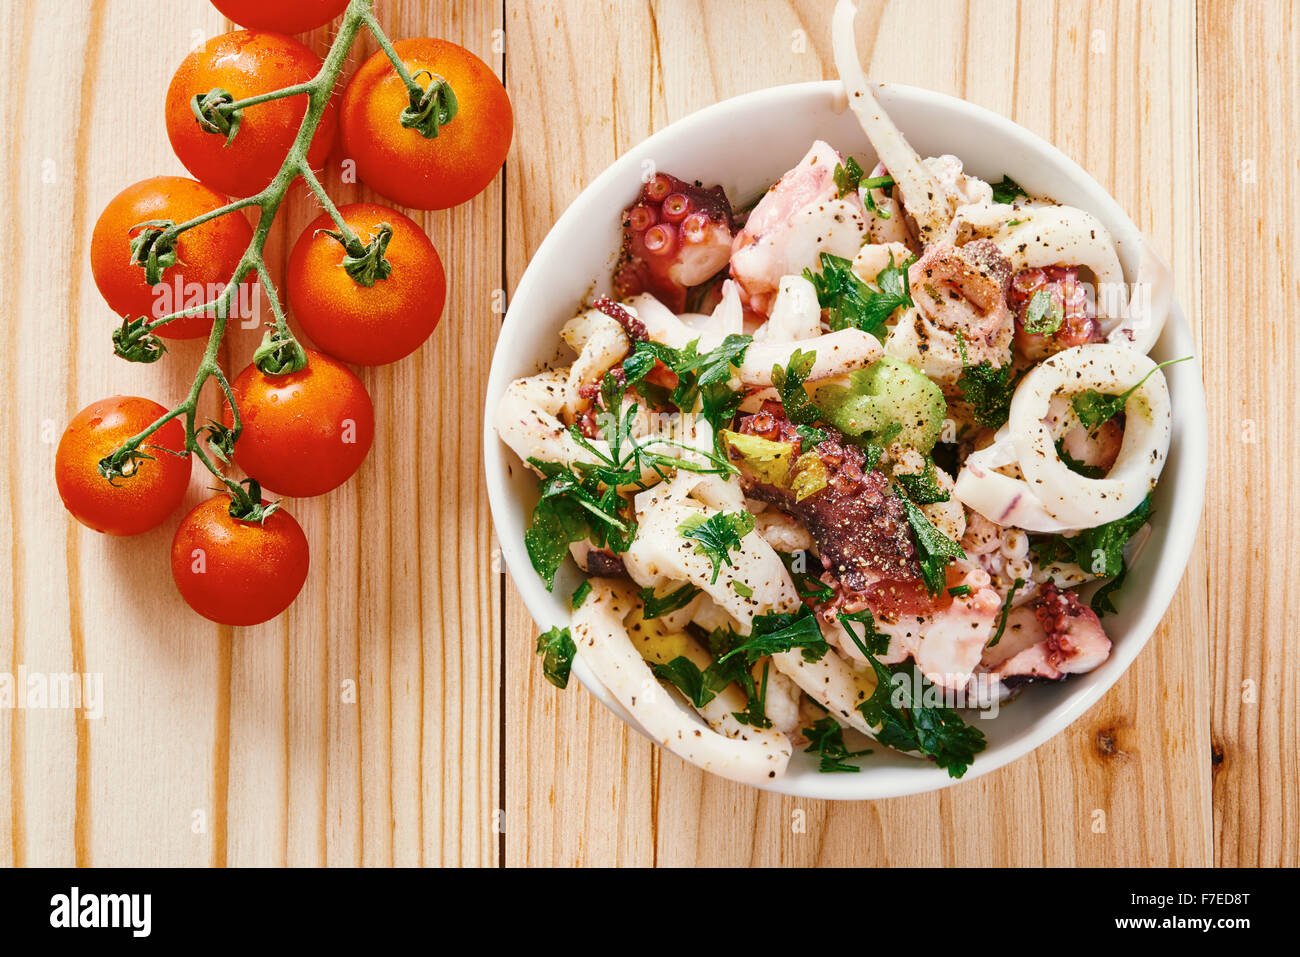 Seafood salad in white bowl, tomato, on light wooden table - Stock Image